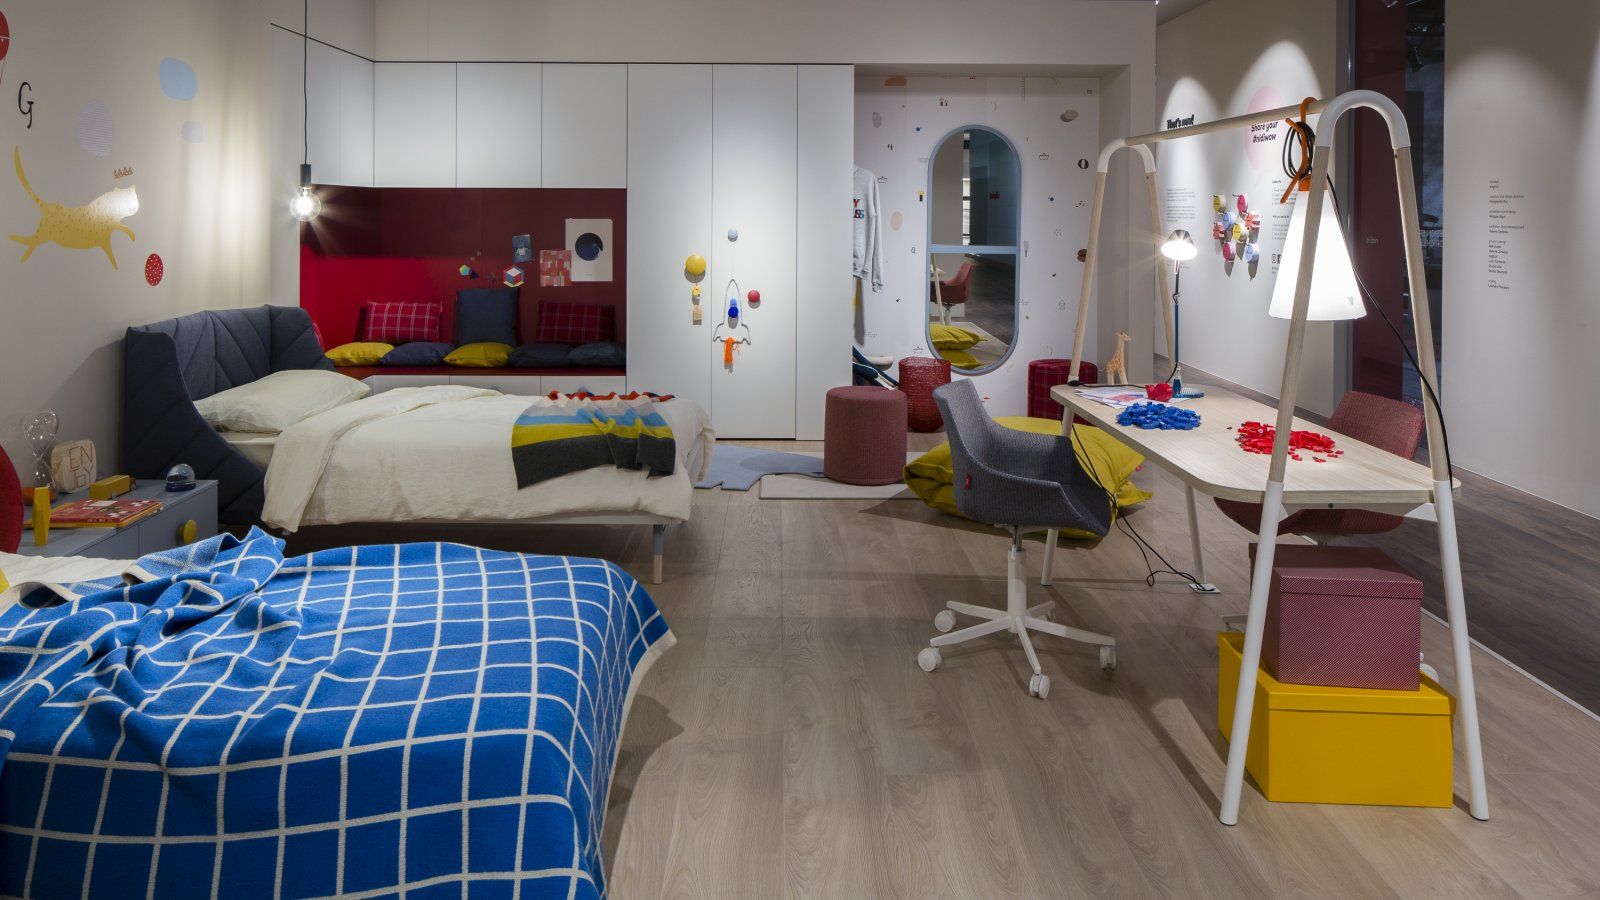 MILANO DESIGN WEEK 2019 – WOW: NOW THAT'S WHAT I CALL NEW!